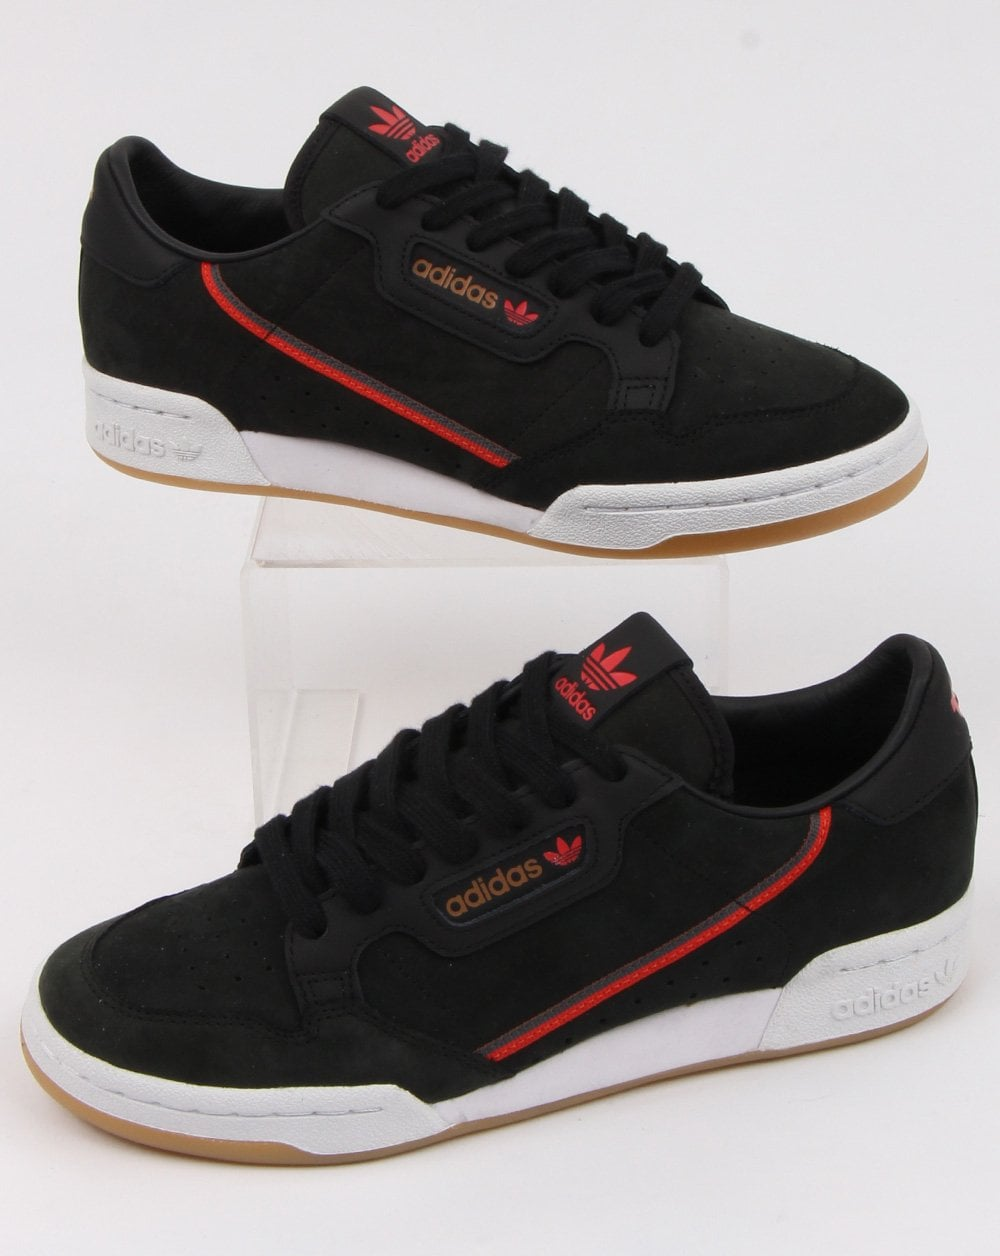 Adidas Continental 80 x TFL Trainers Black/red/brown